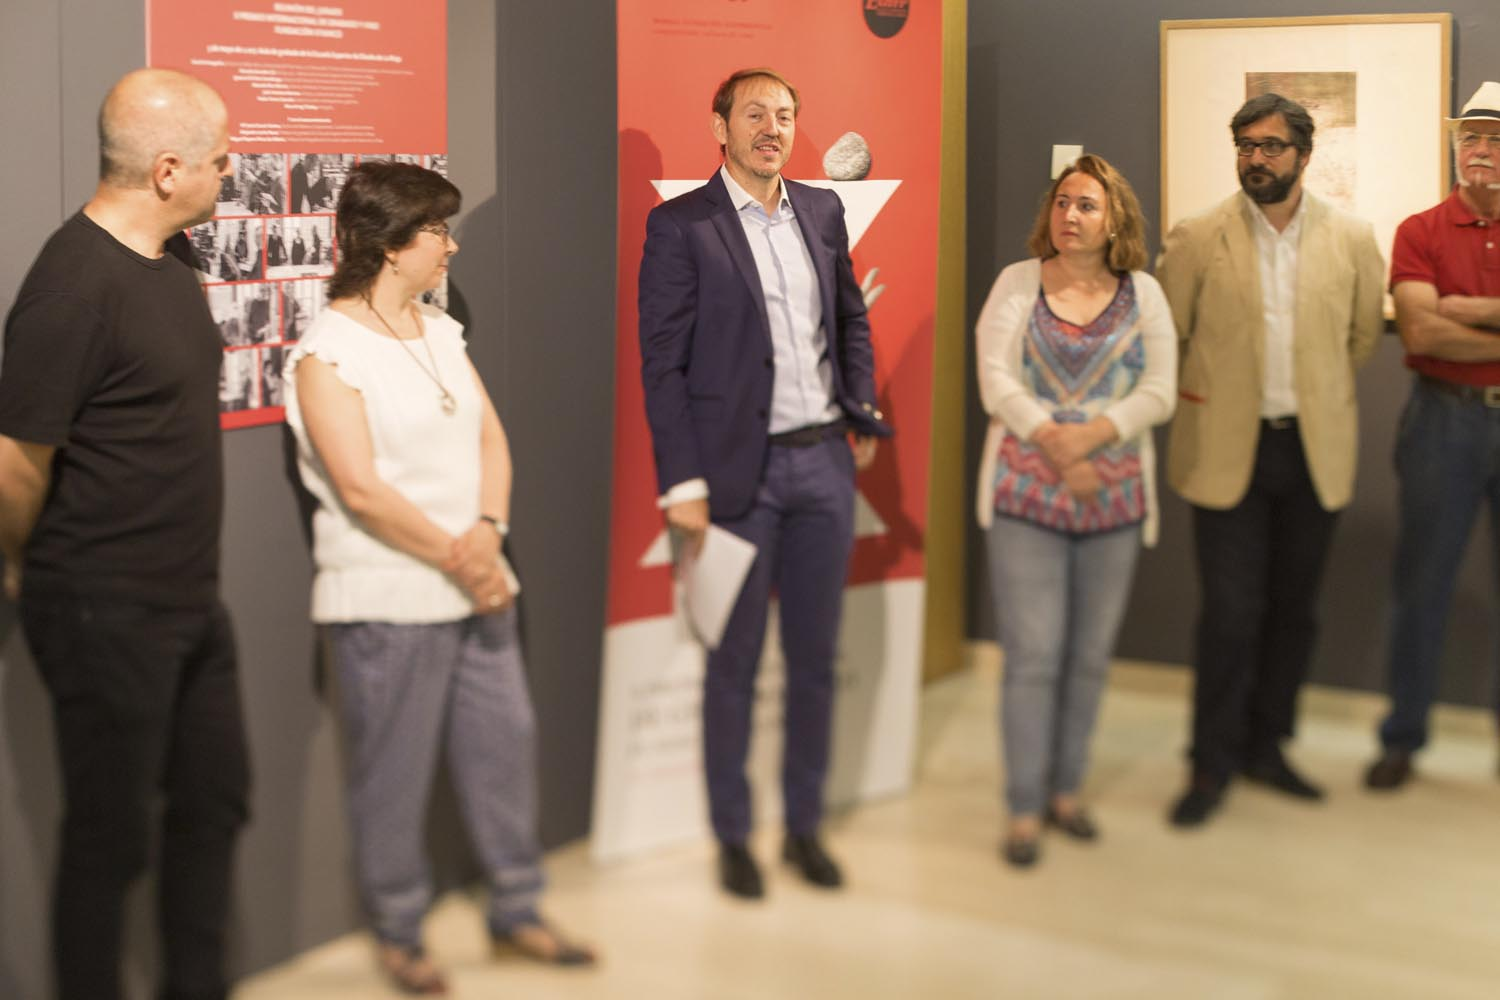 Inauguración vivanco